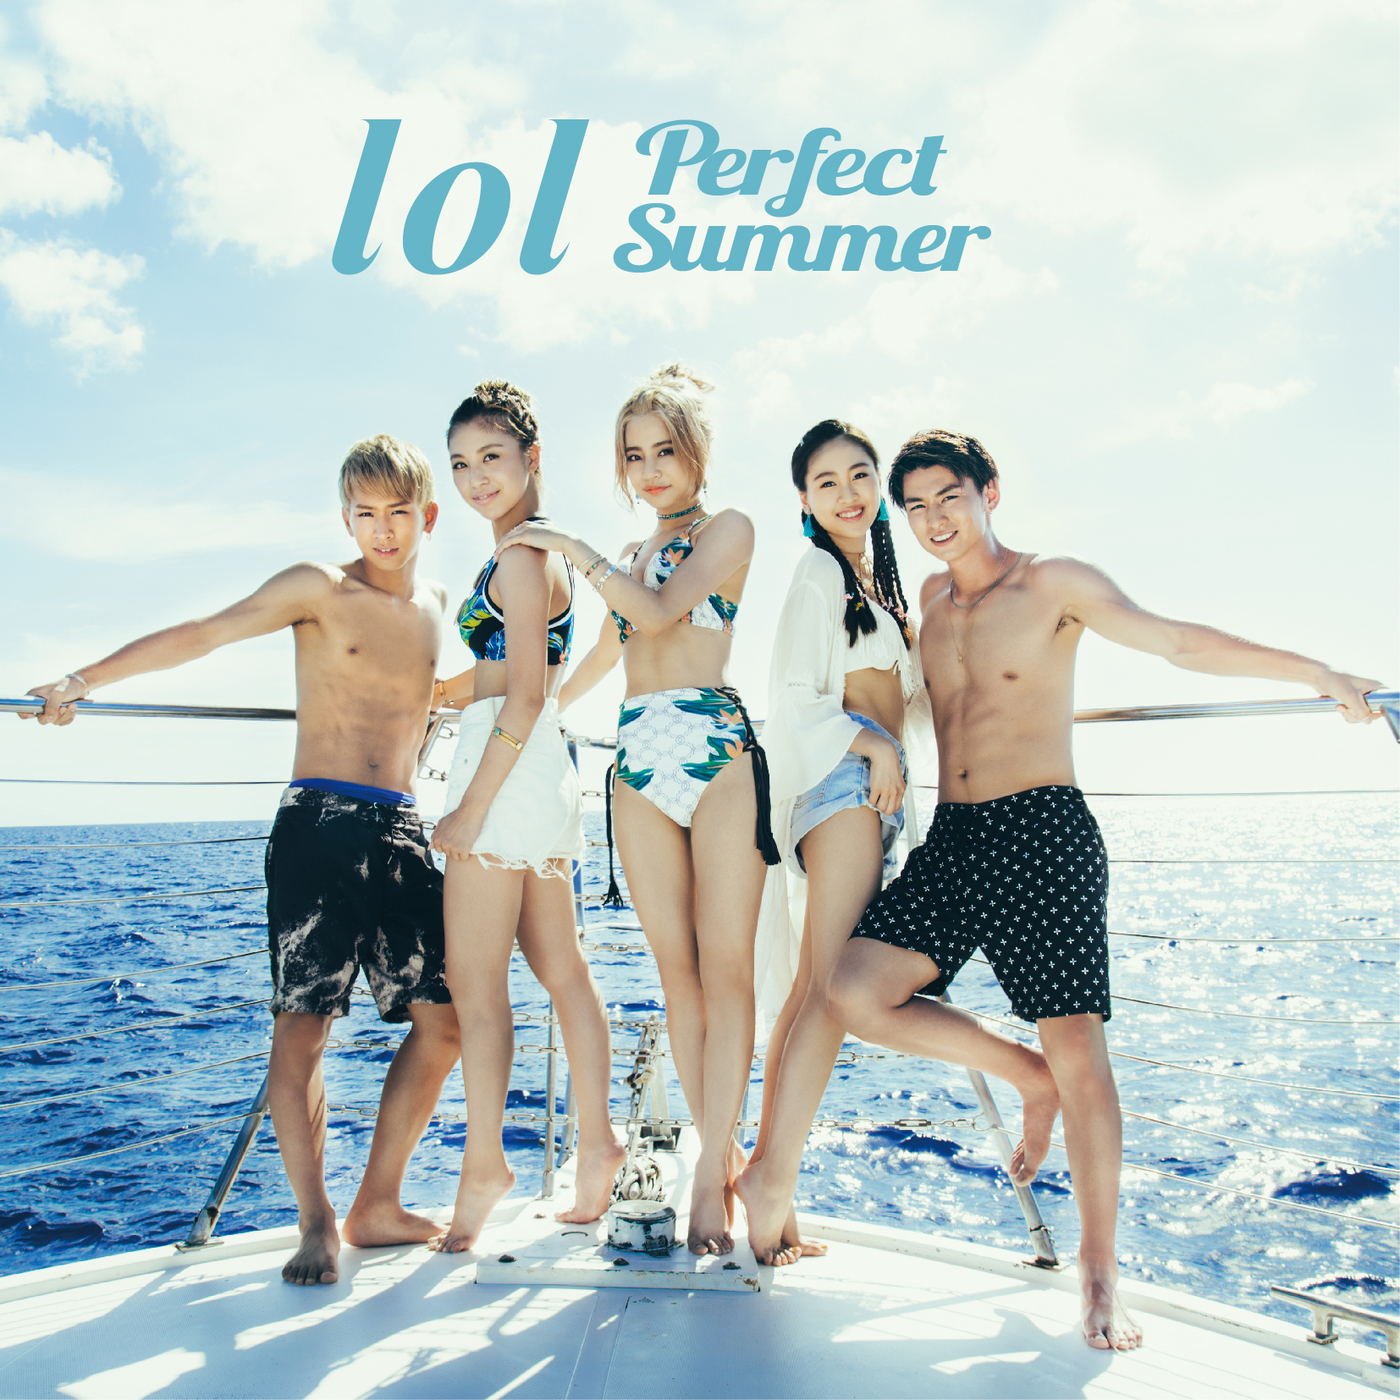 20170705.2351.04 lol - Perfect Summer (Special edition) (M4A) cover.jpg